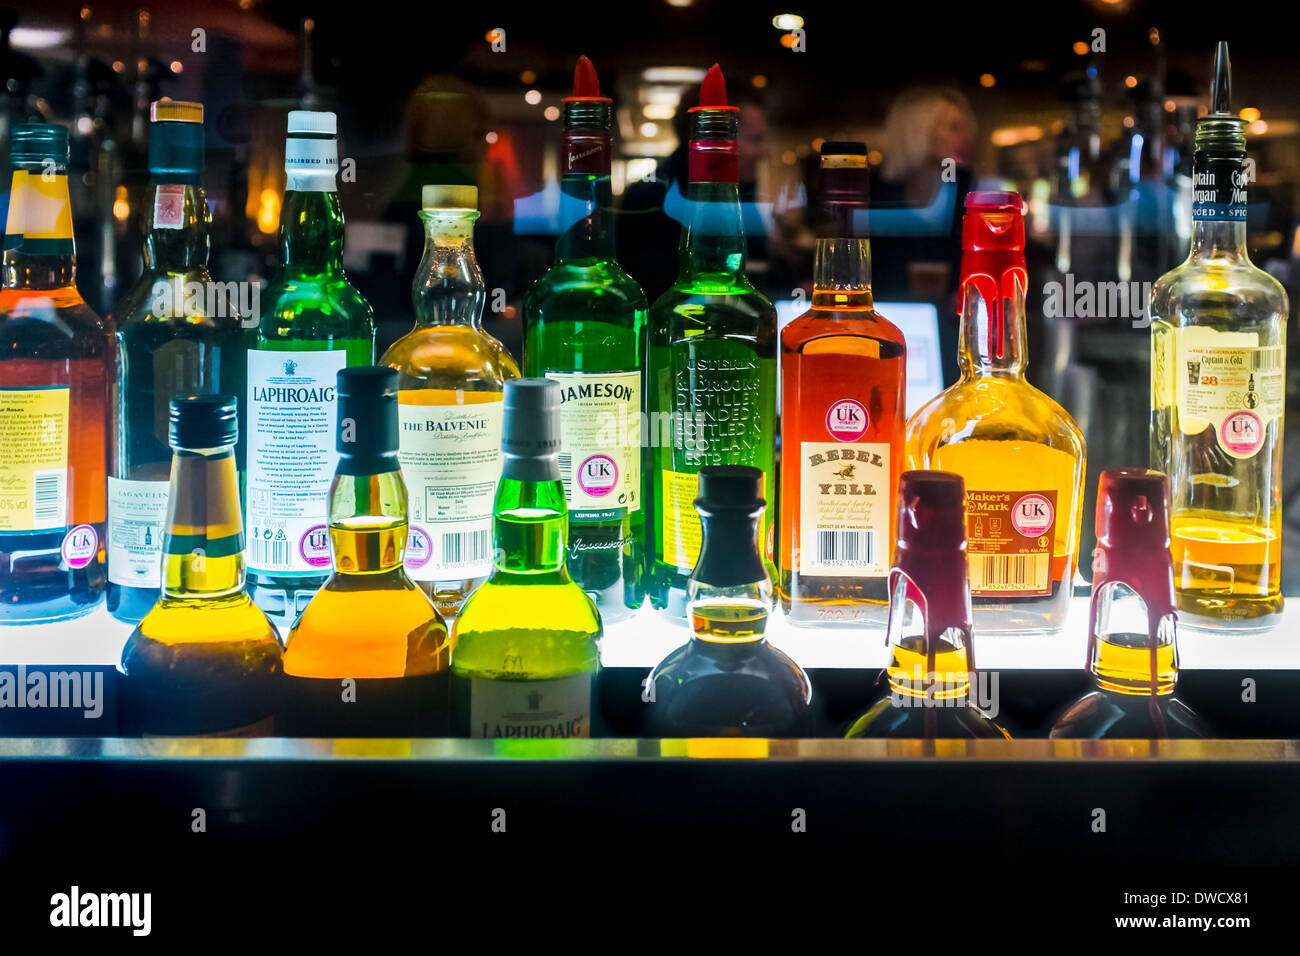 Bottles of alcoholic spirits in bar, London, UK - Stock Image